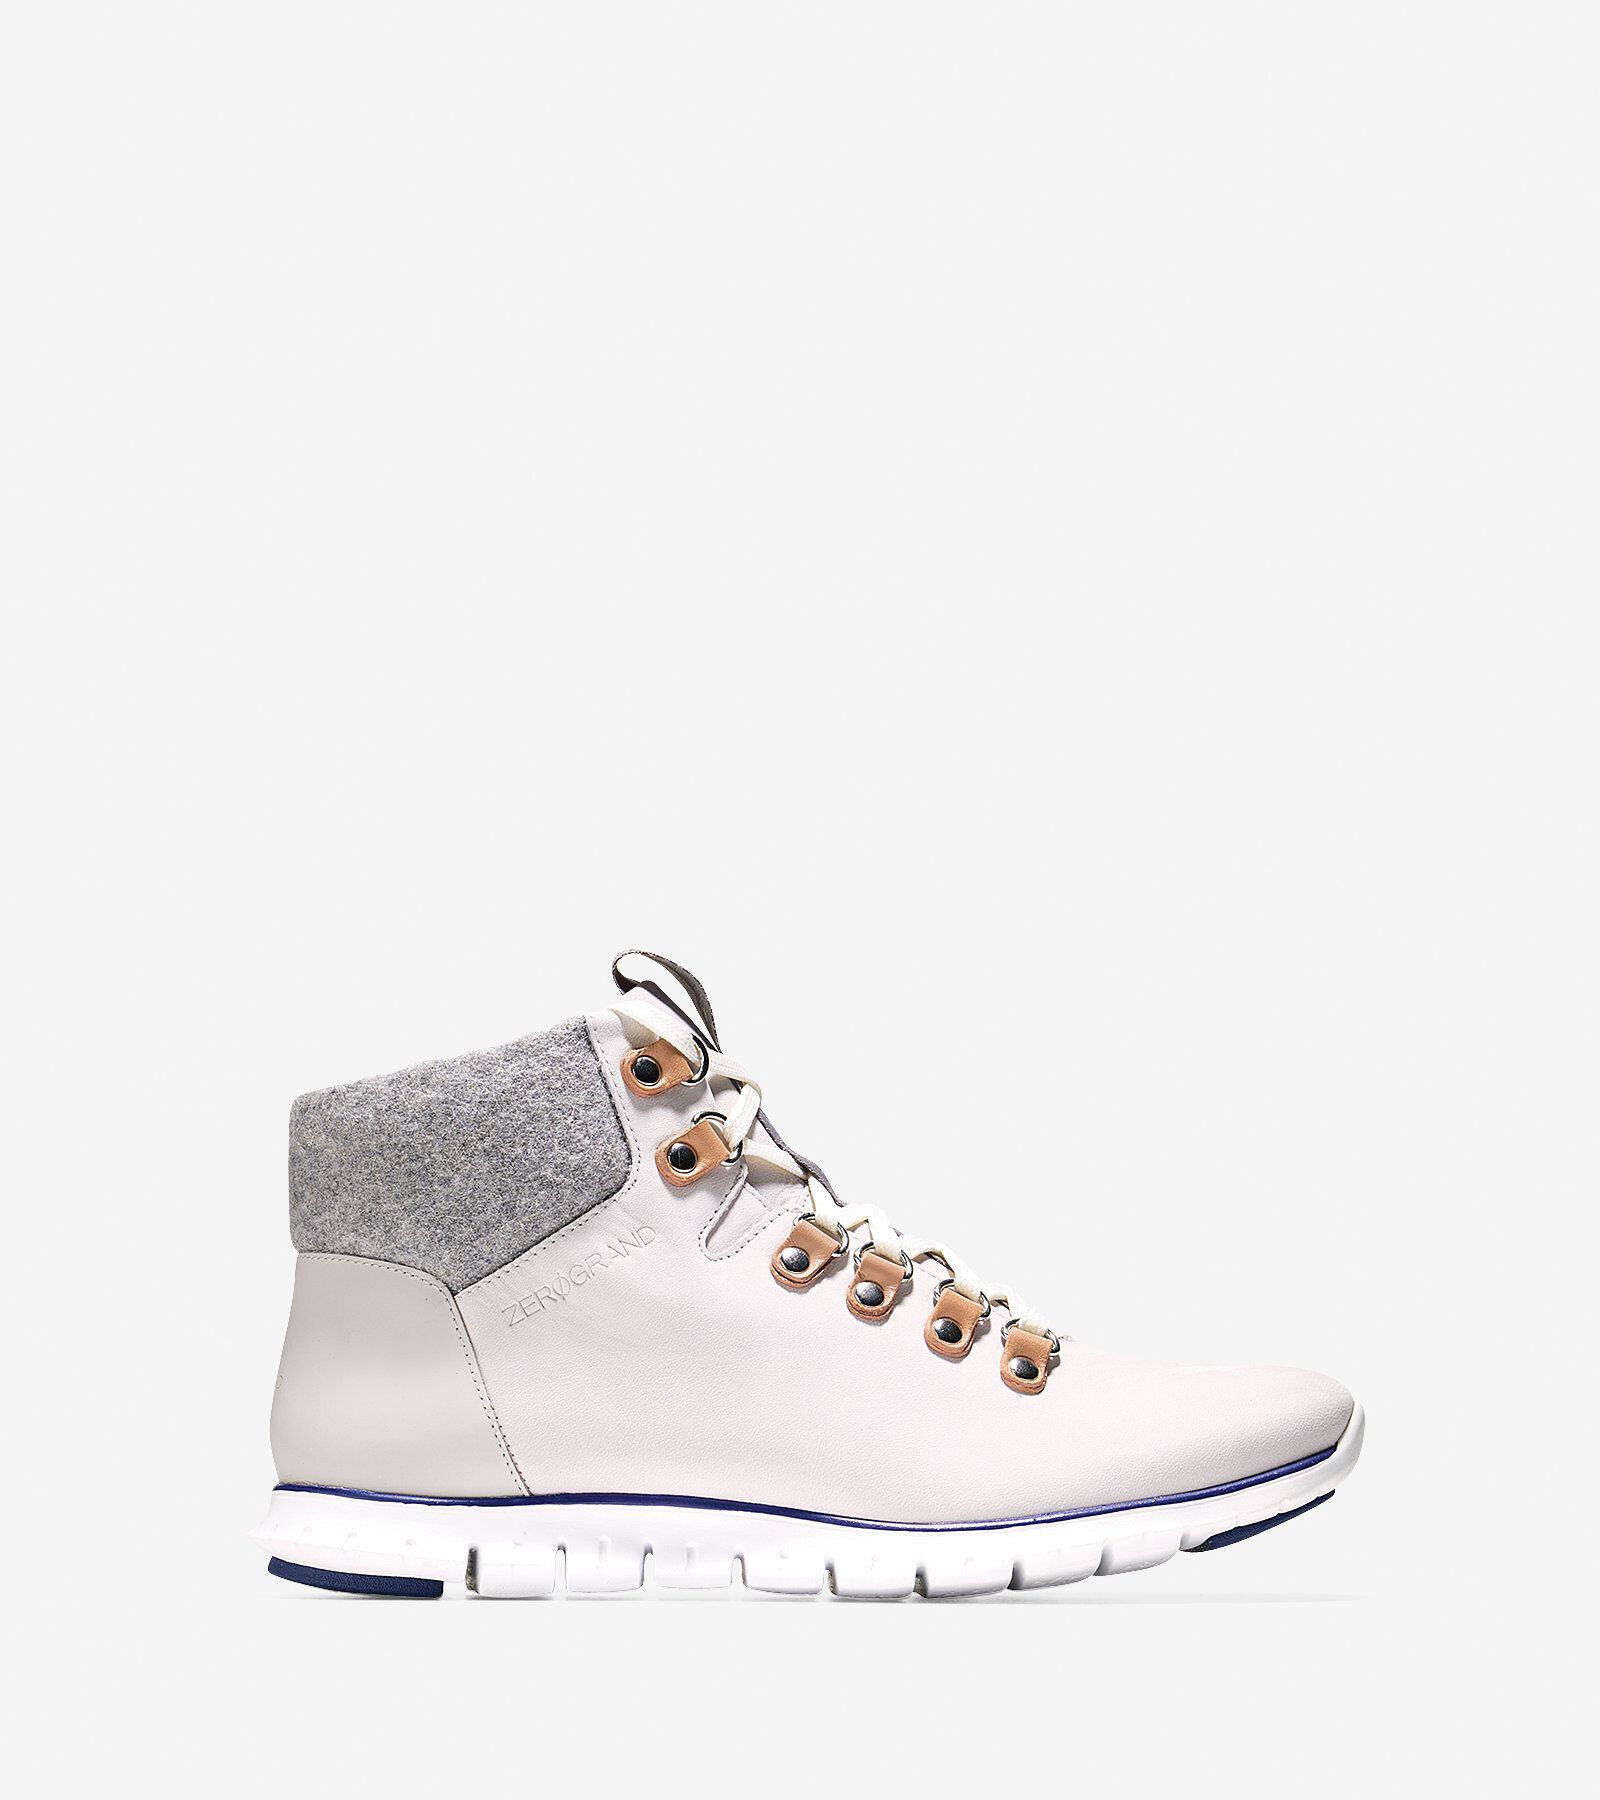 Cole Haan Zerogrand Hiking Sneakers